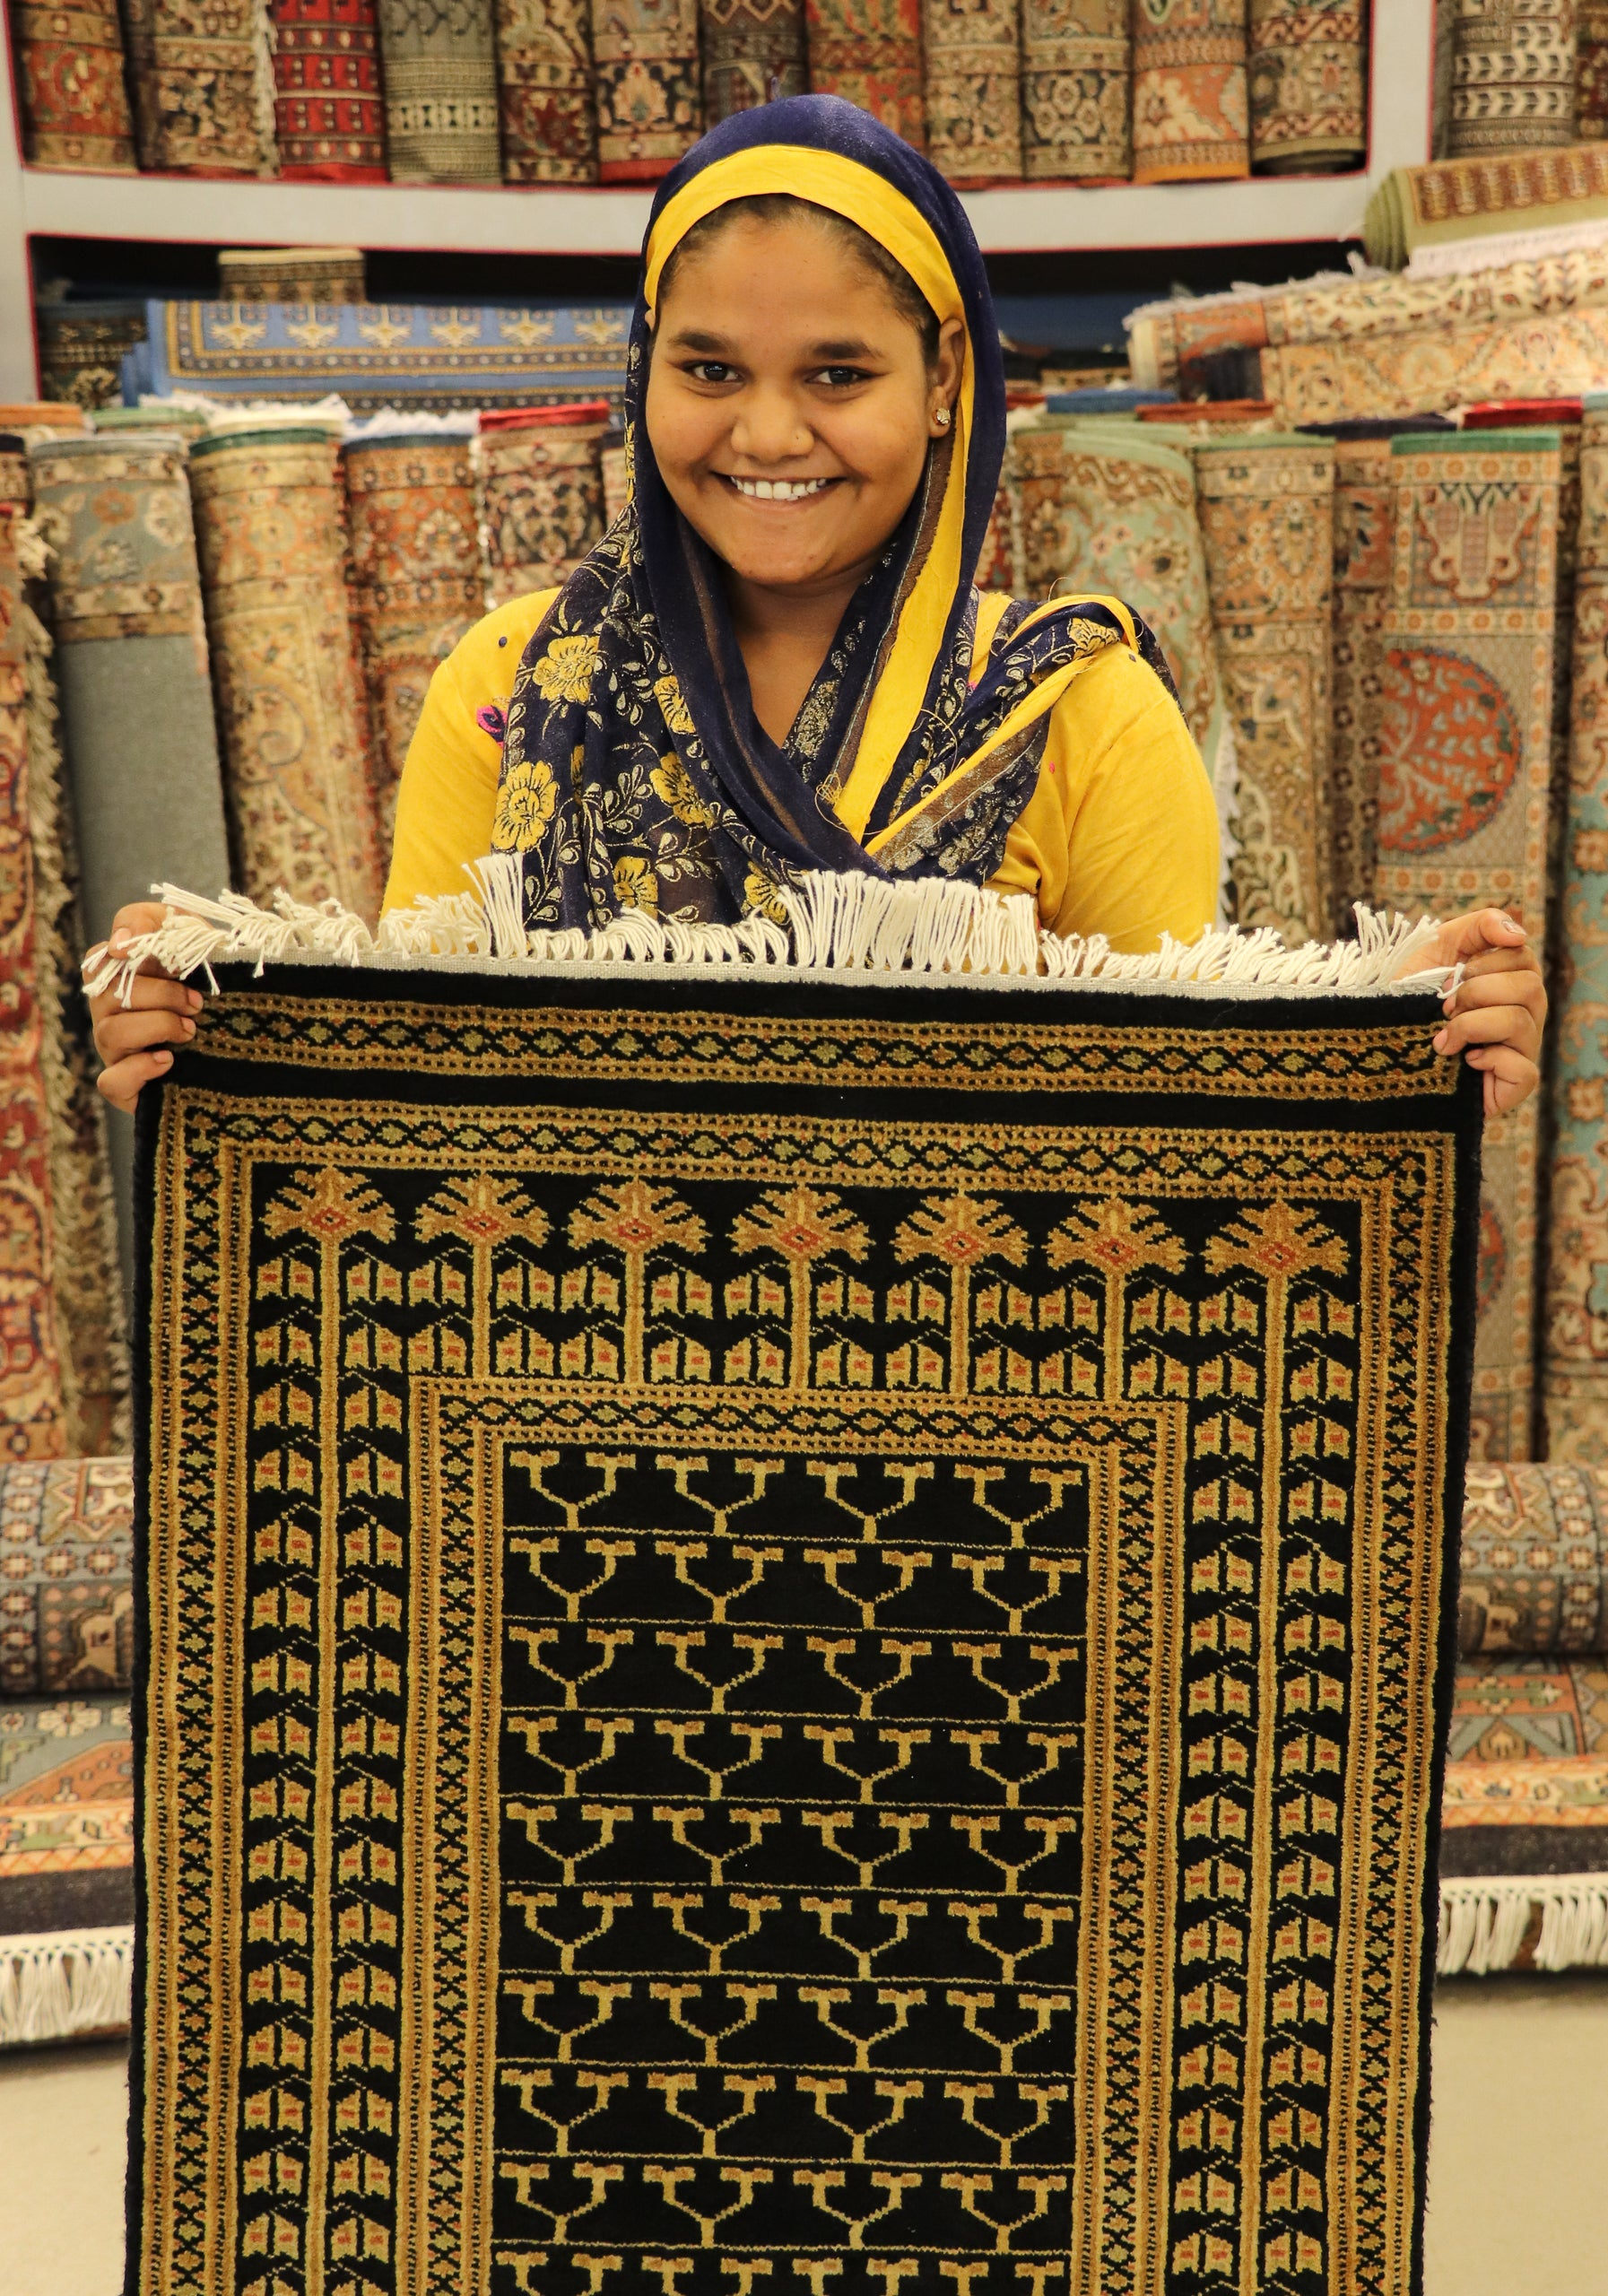 Muskan with a recent carpet made